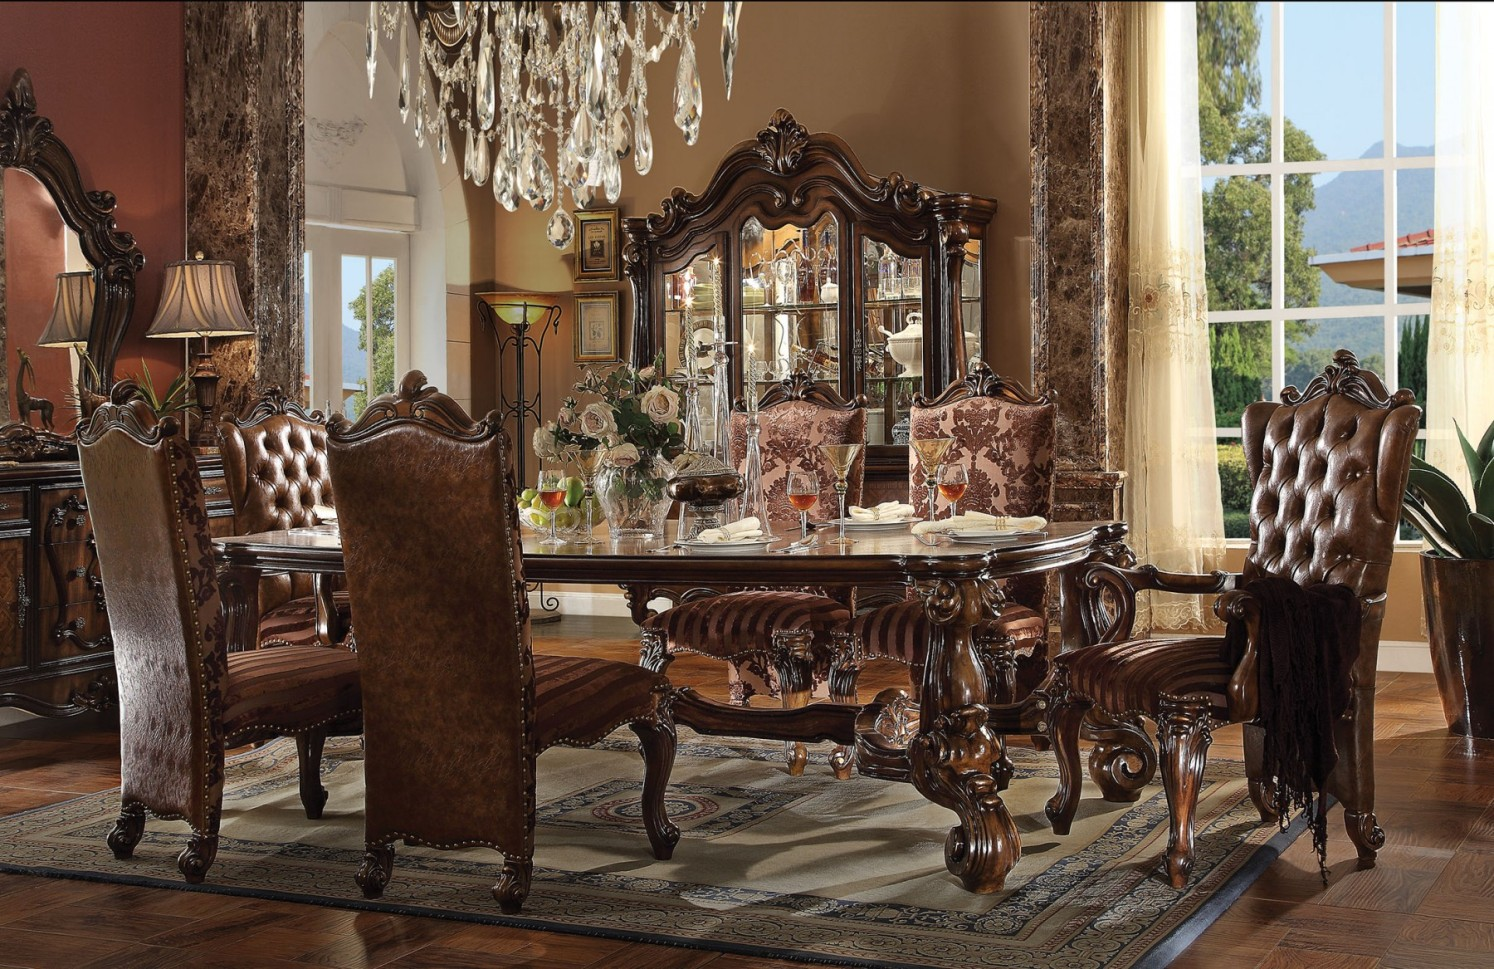 Formal dining room sets how elegance is made possible for Formal dining room furniture